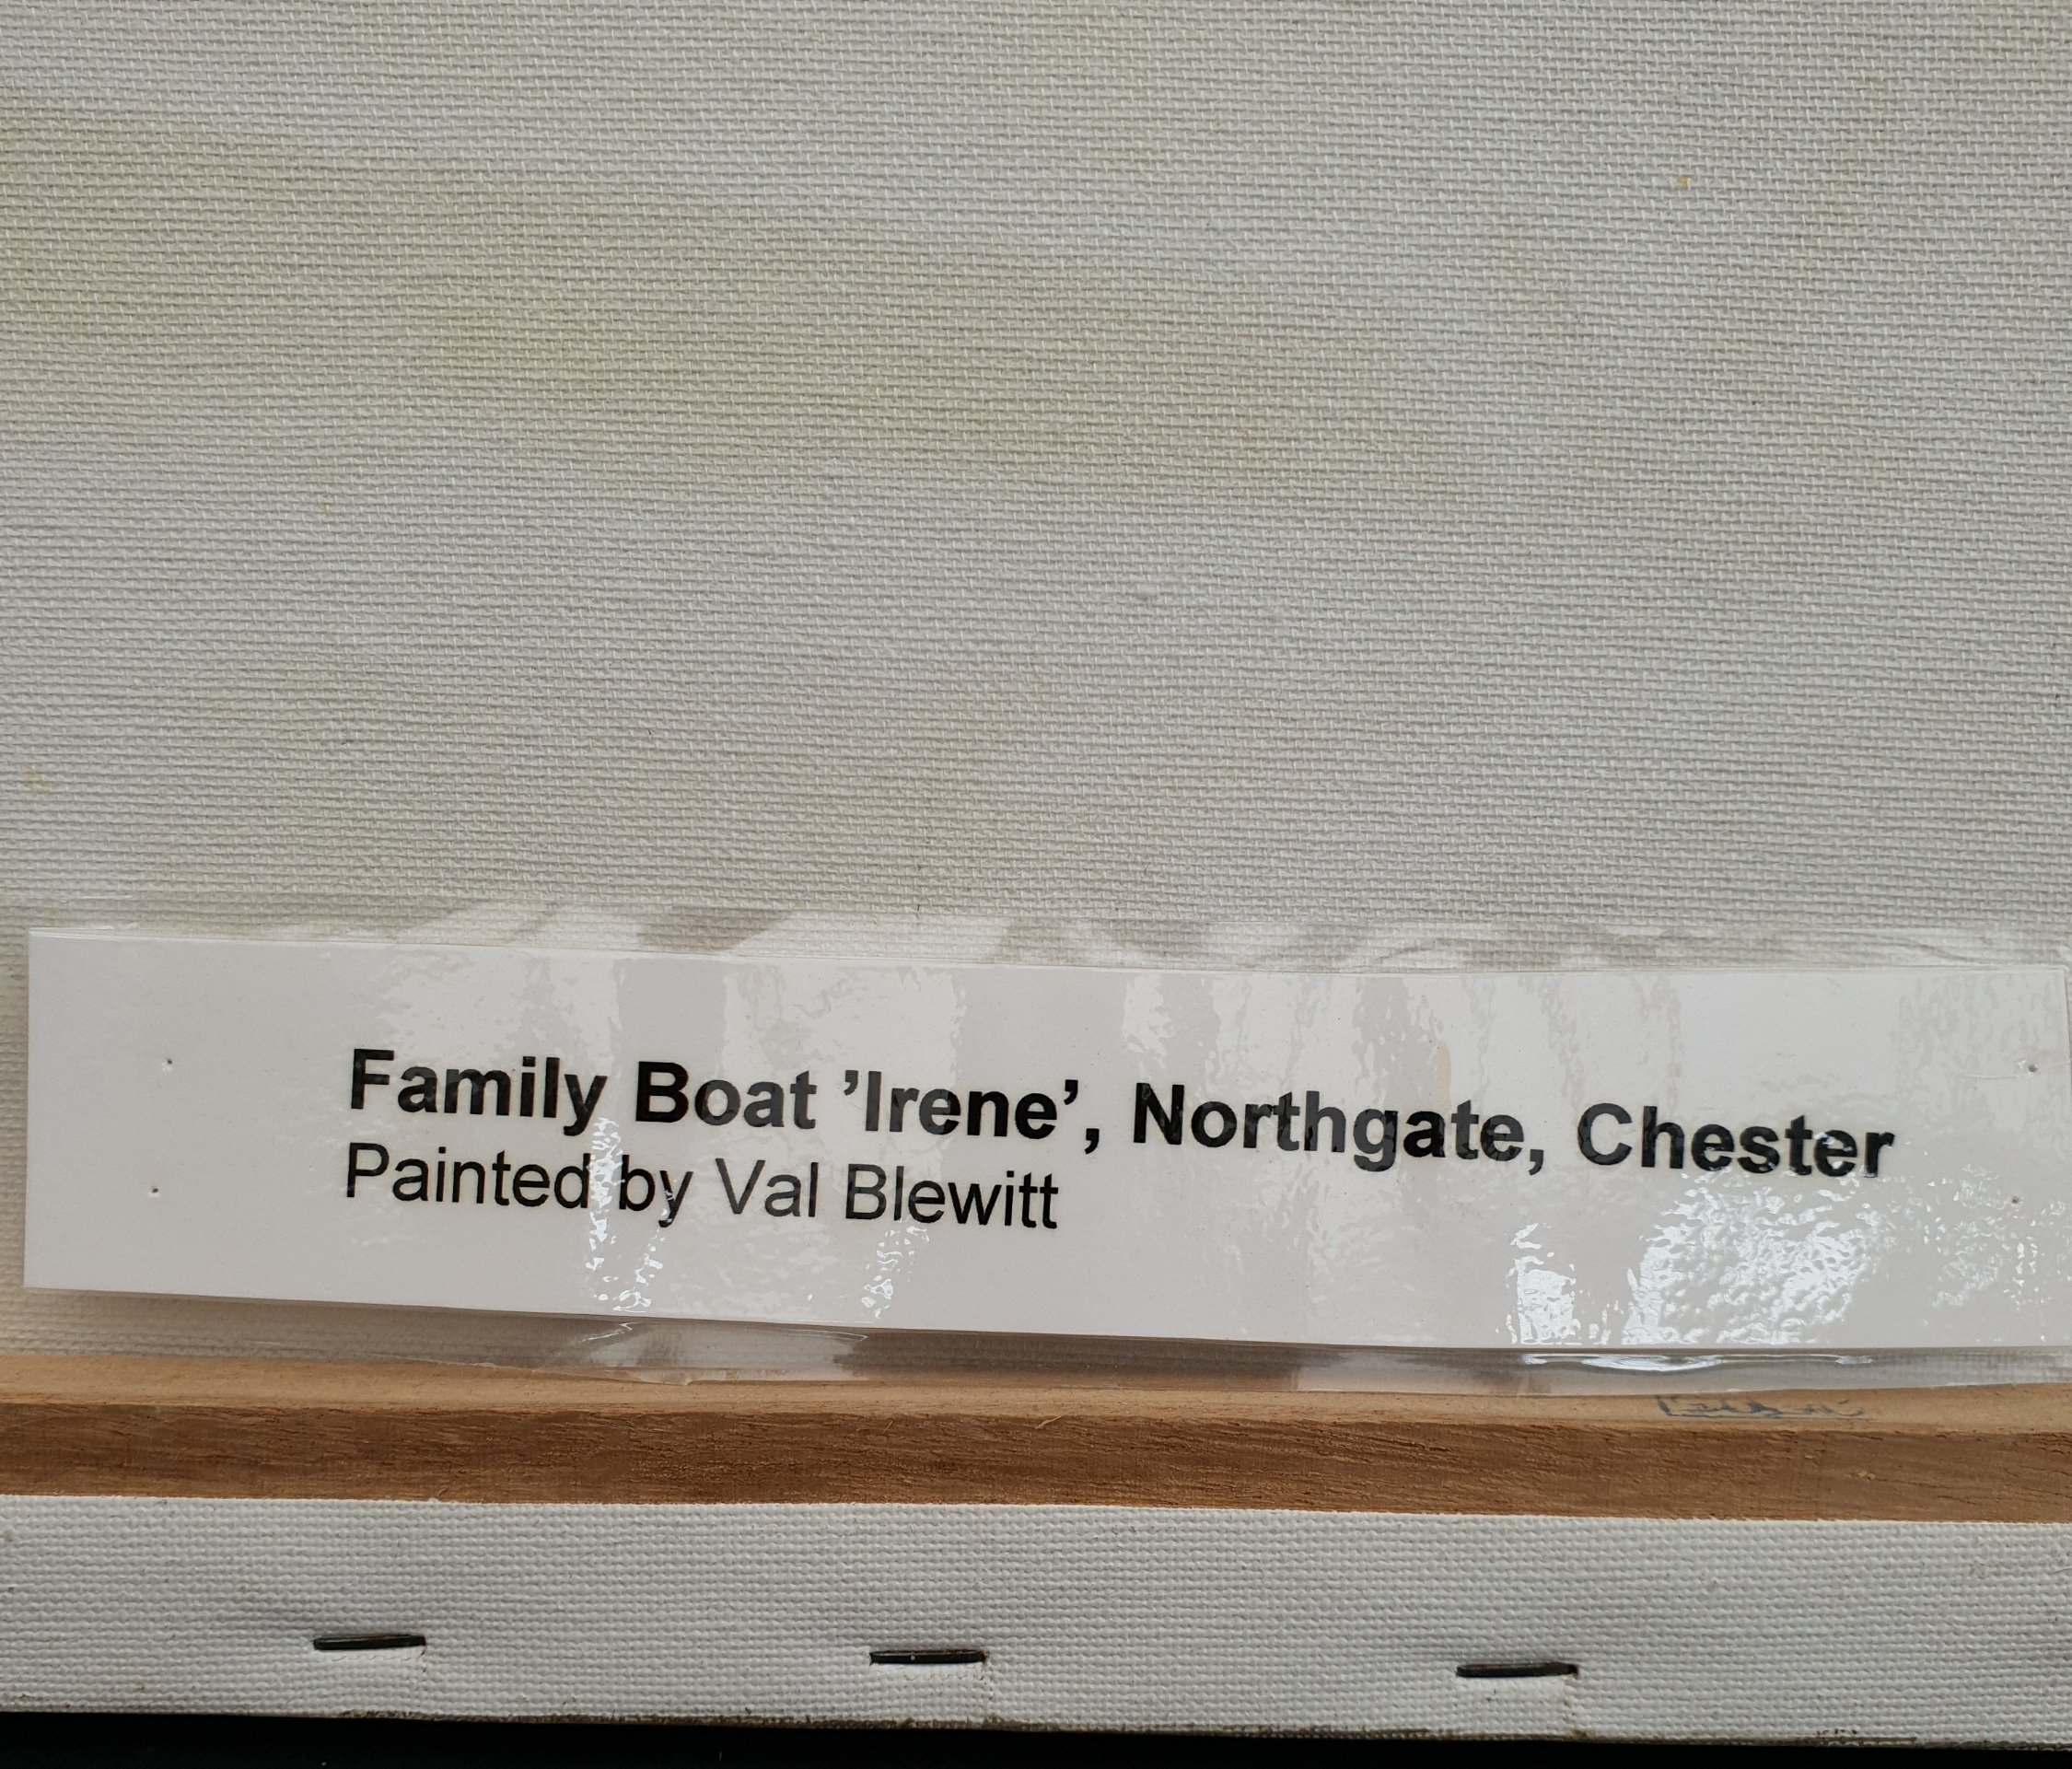 Vintage Art Painting Oil On Canvas Family Barge Northgate Chester Signed Lower Left - Image 3 of 4